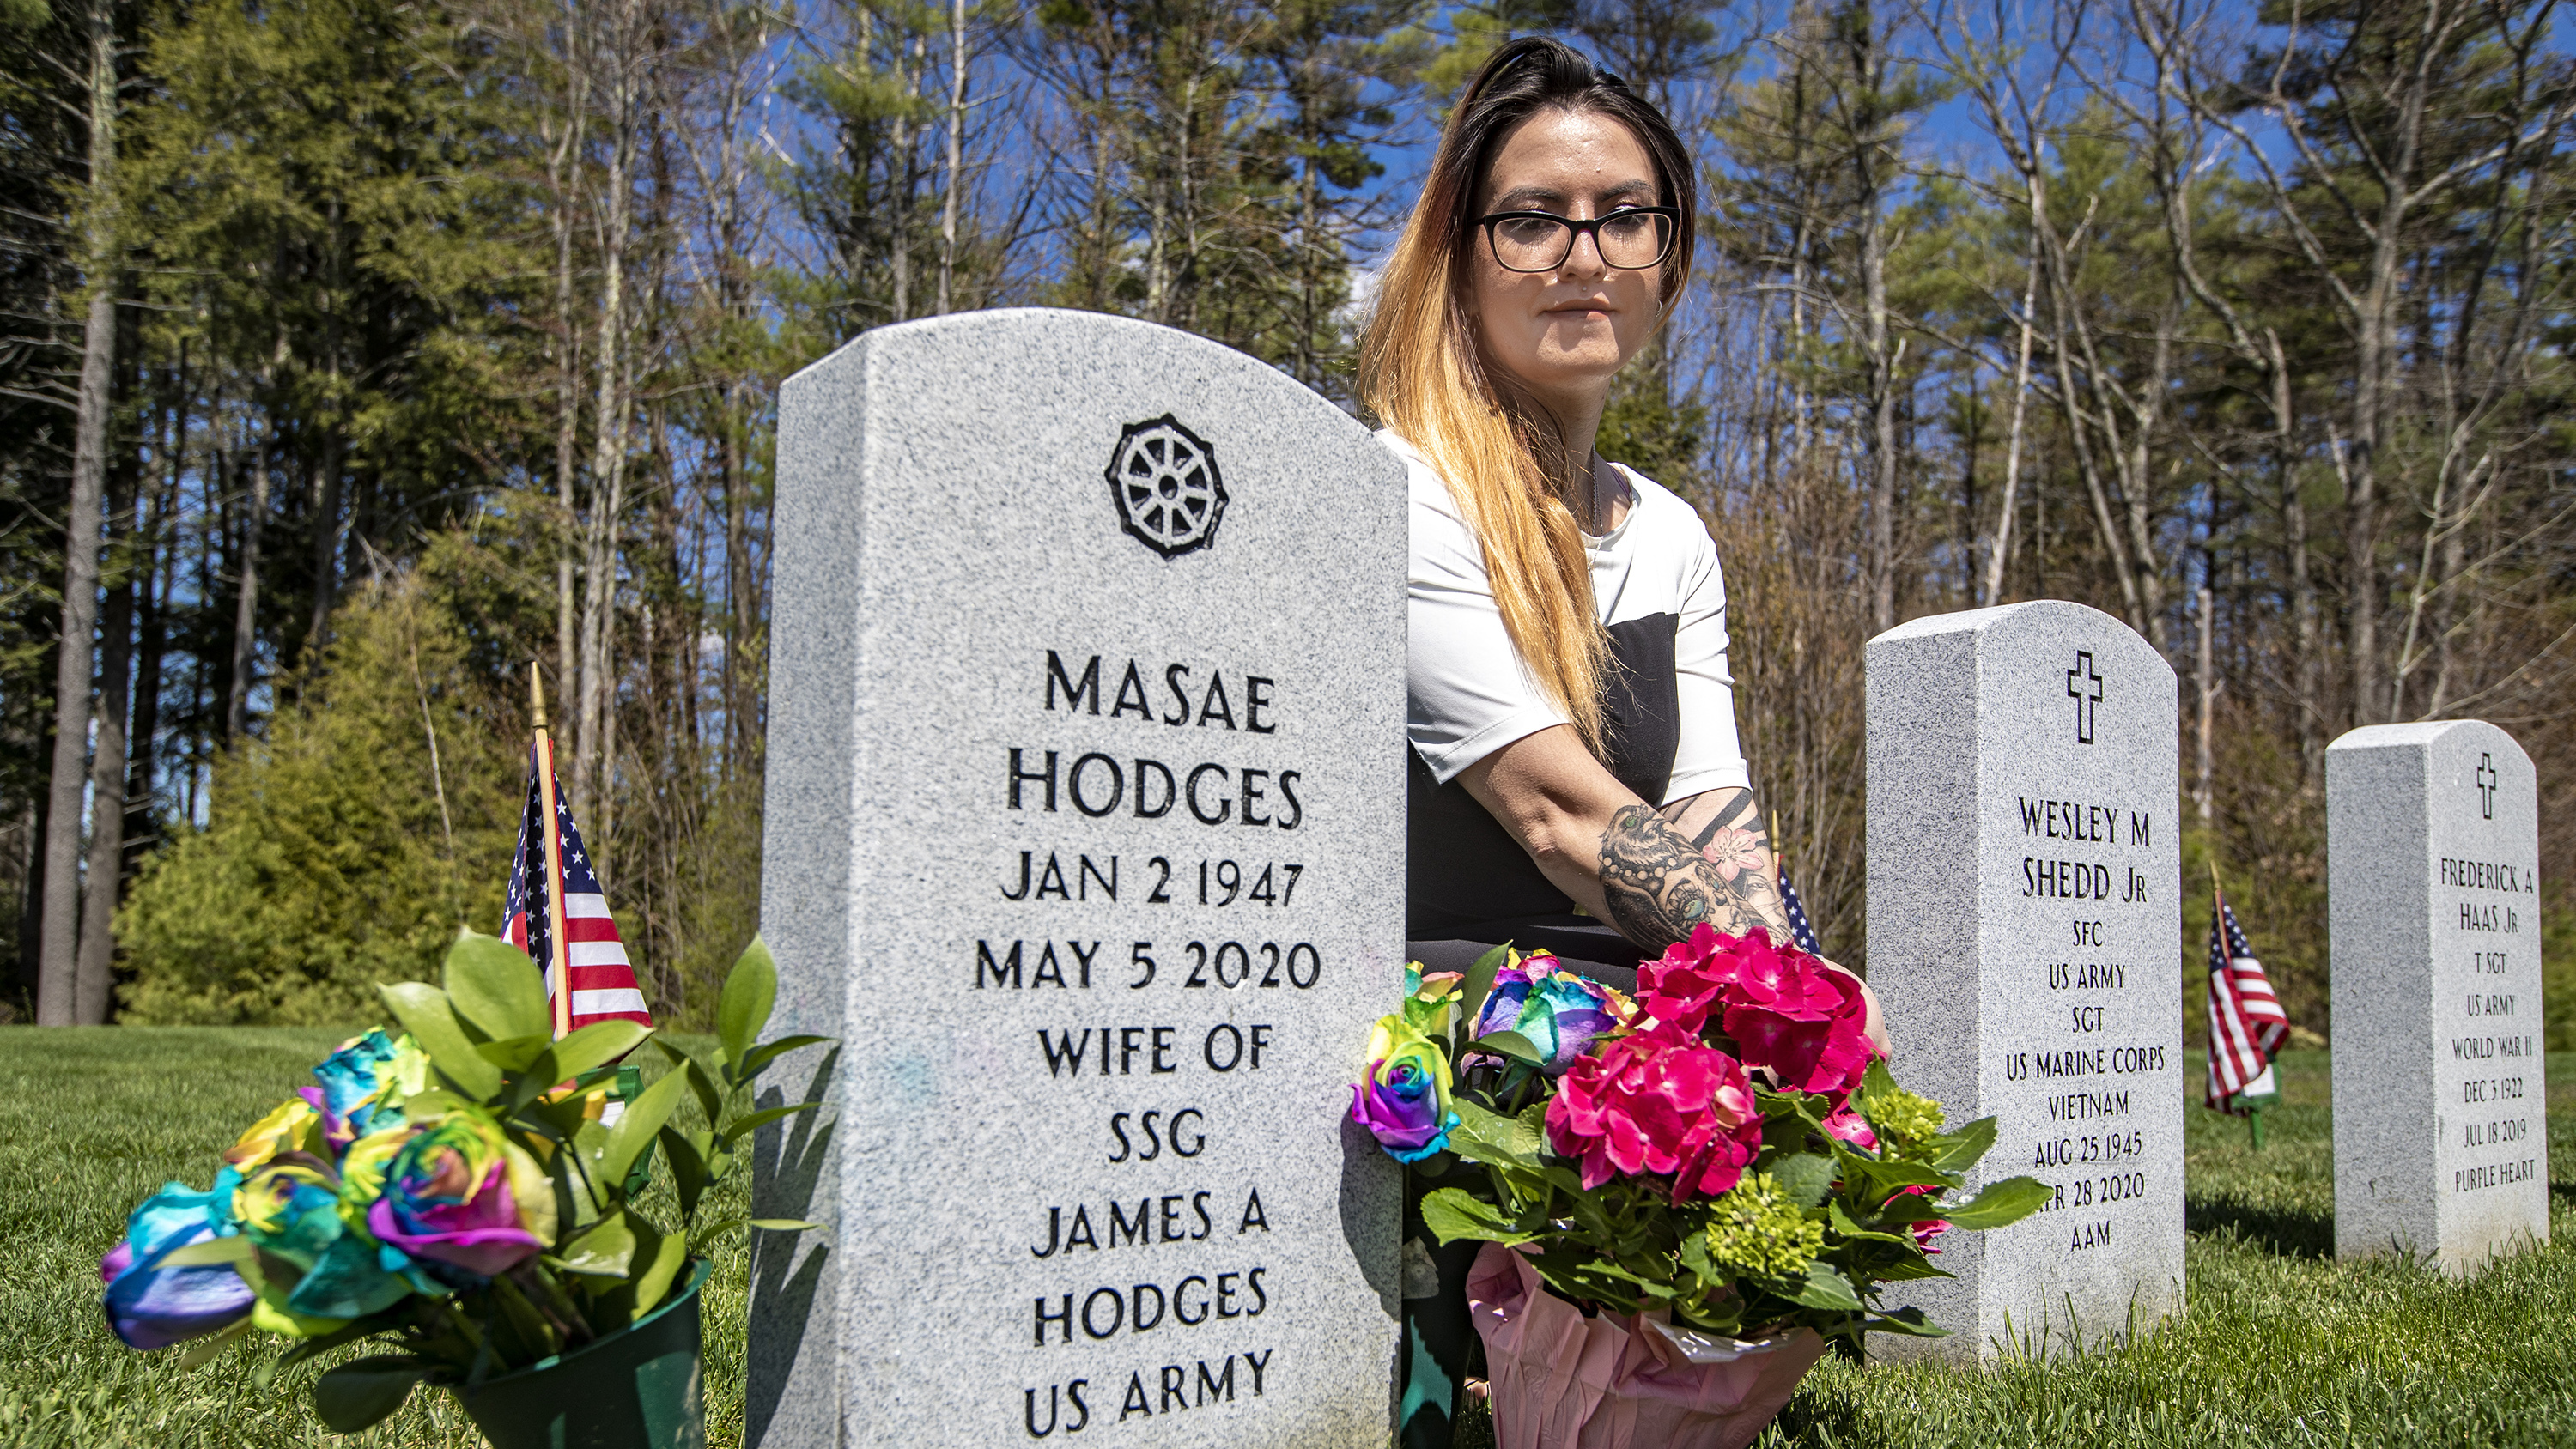 Suzanna Smith kneeling at the gravestone of her mother, Masae Hodges, at the Massachusetts Veterans' Memorial Cemetery in Winchendon. (Jesse Costa/WBUR)